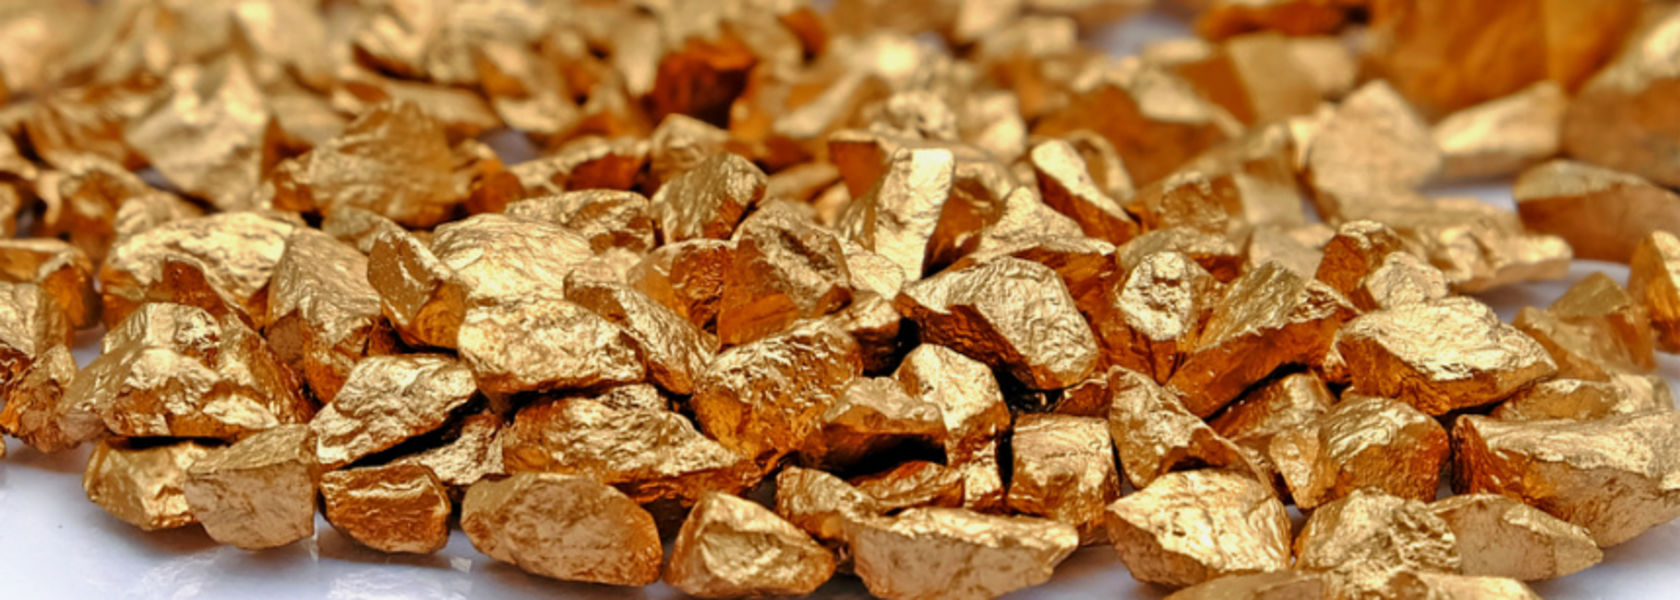 Researchers find cyanide-free gold leaching process